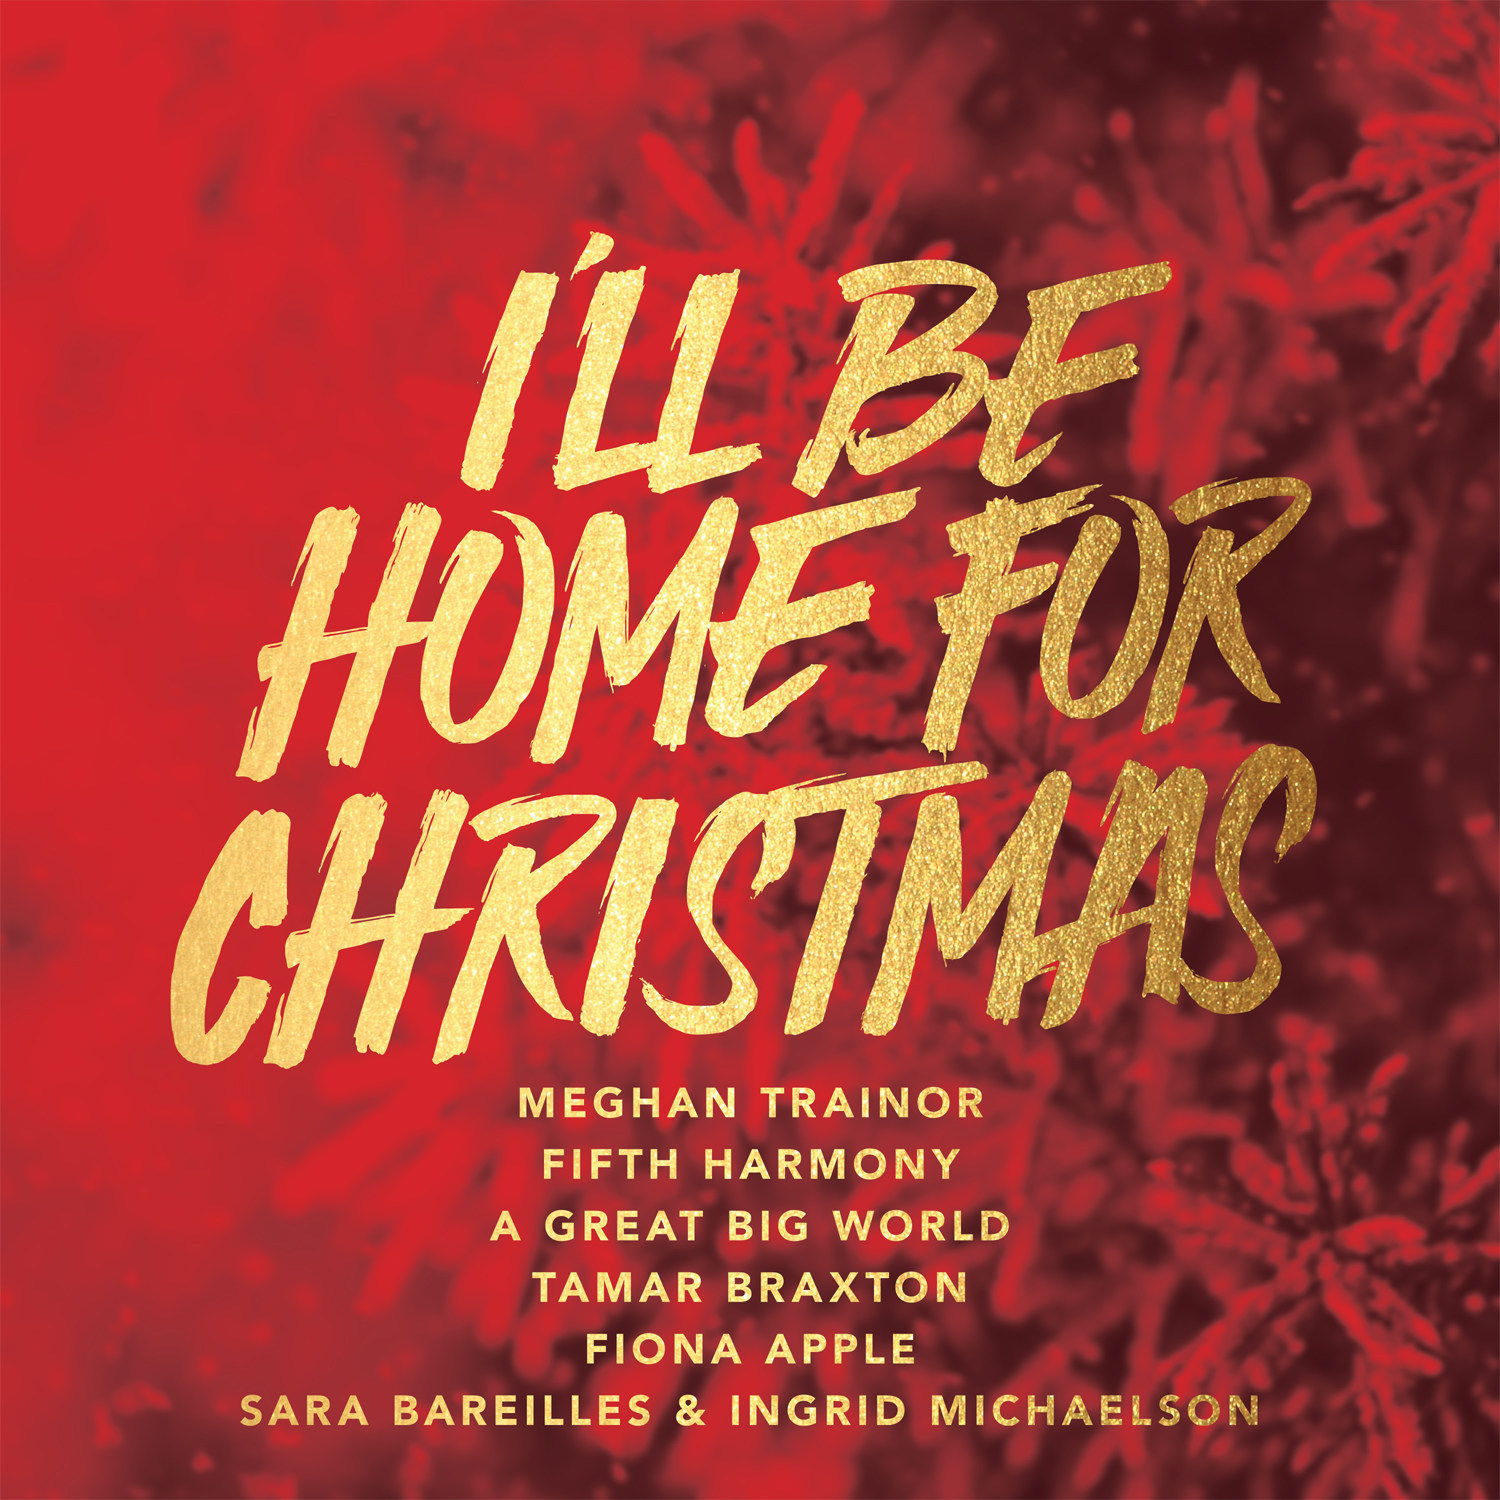 ill be home for christmas compilation album by various artists - Coming Home For Christmas